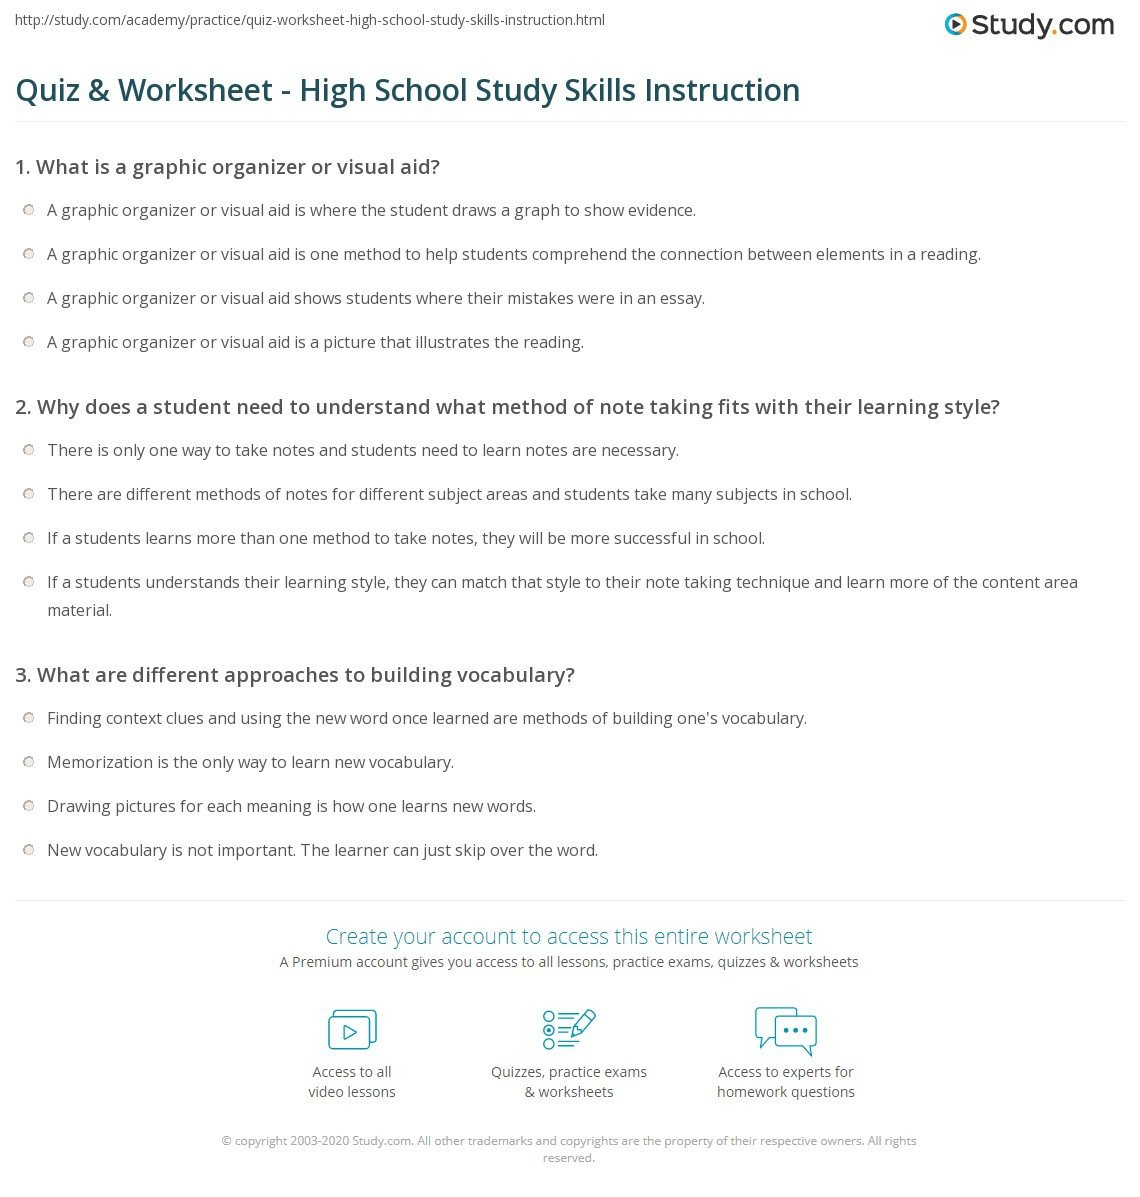 Note Taking Practice Worksheets Quiz & Worksheet High School Study Skills Instruction